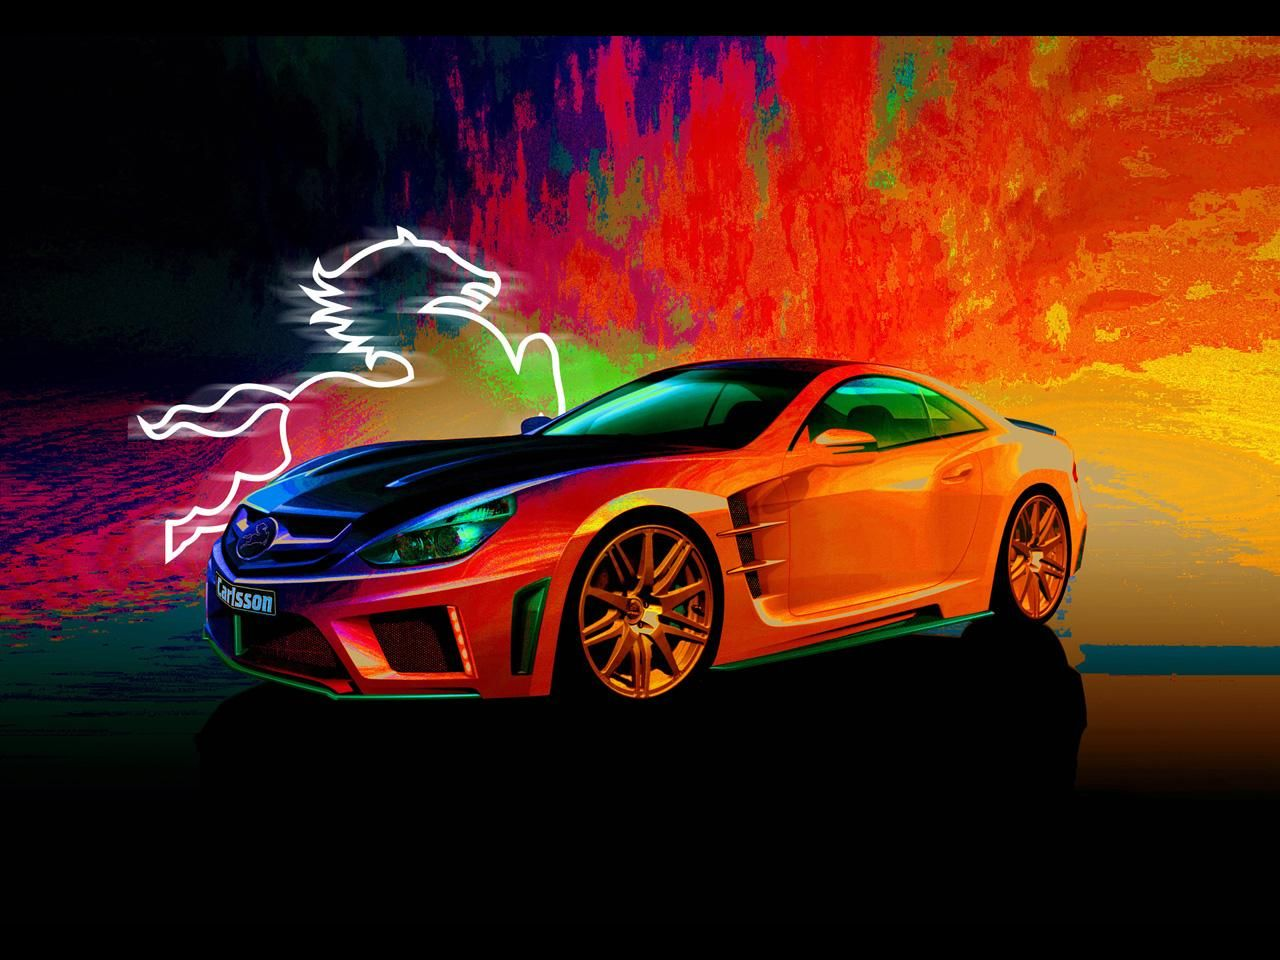 Whoa Awesome Car Car Backgrounds Cool Car Pictures Cool Car Backgrounds